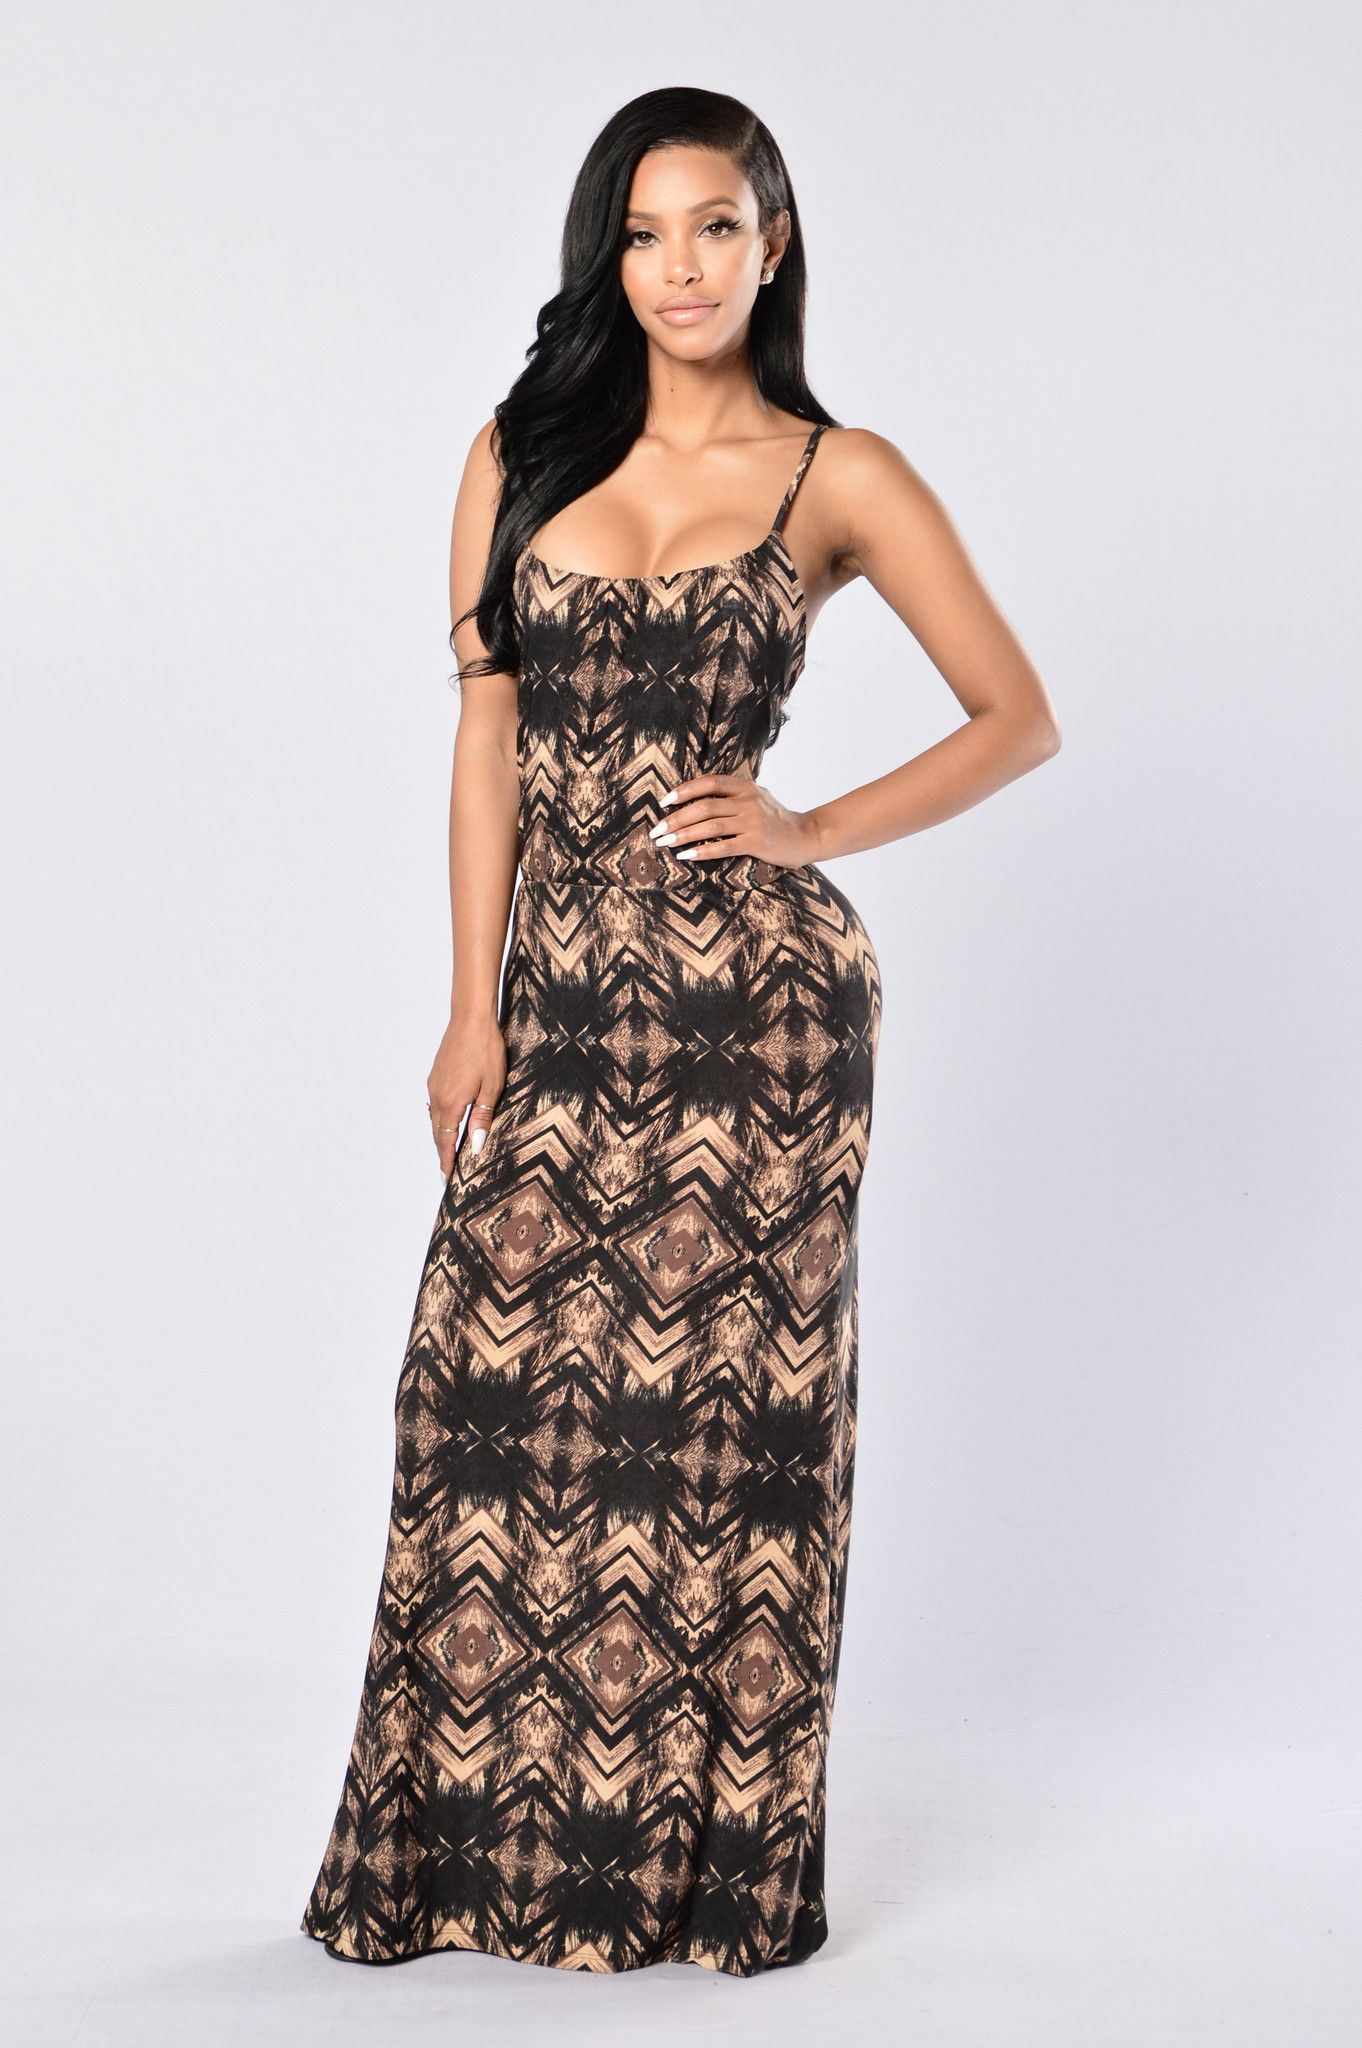 Anaconda Dress - Chocolate